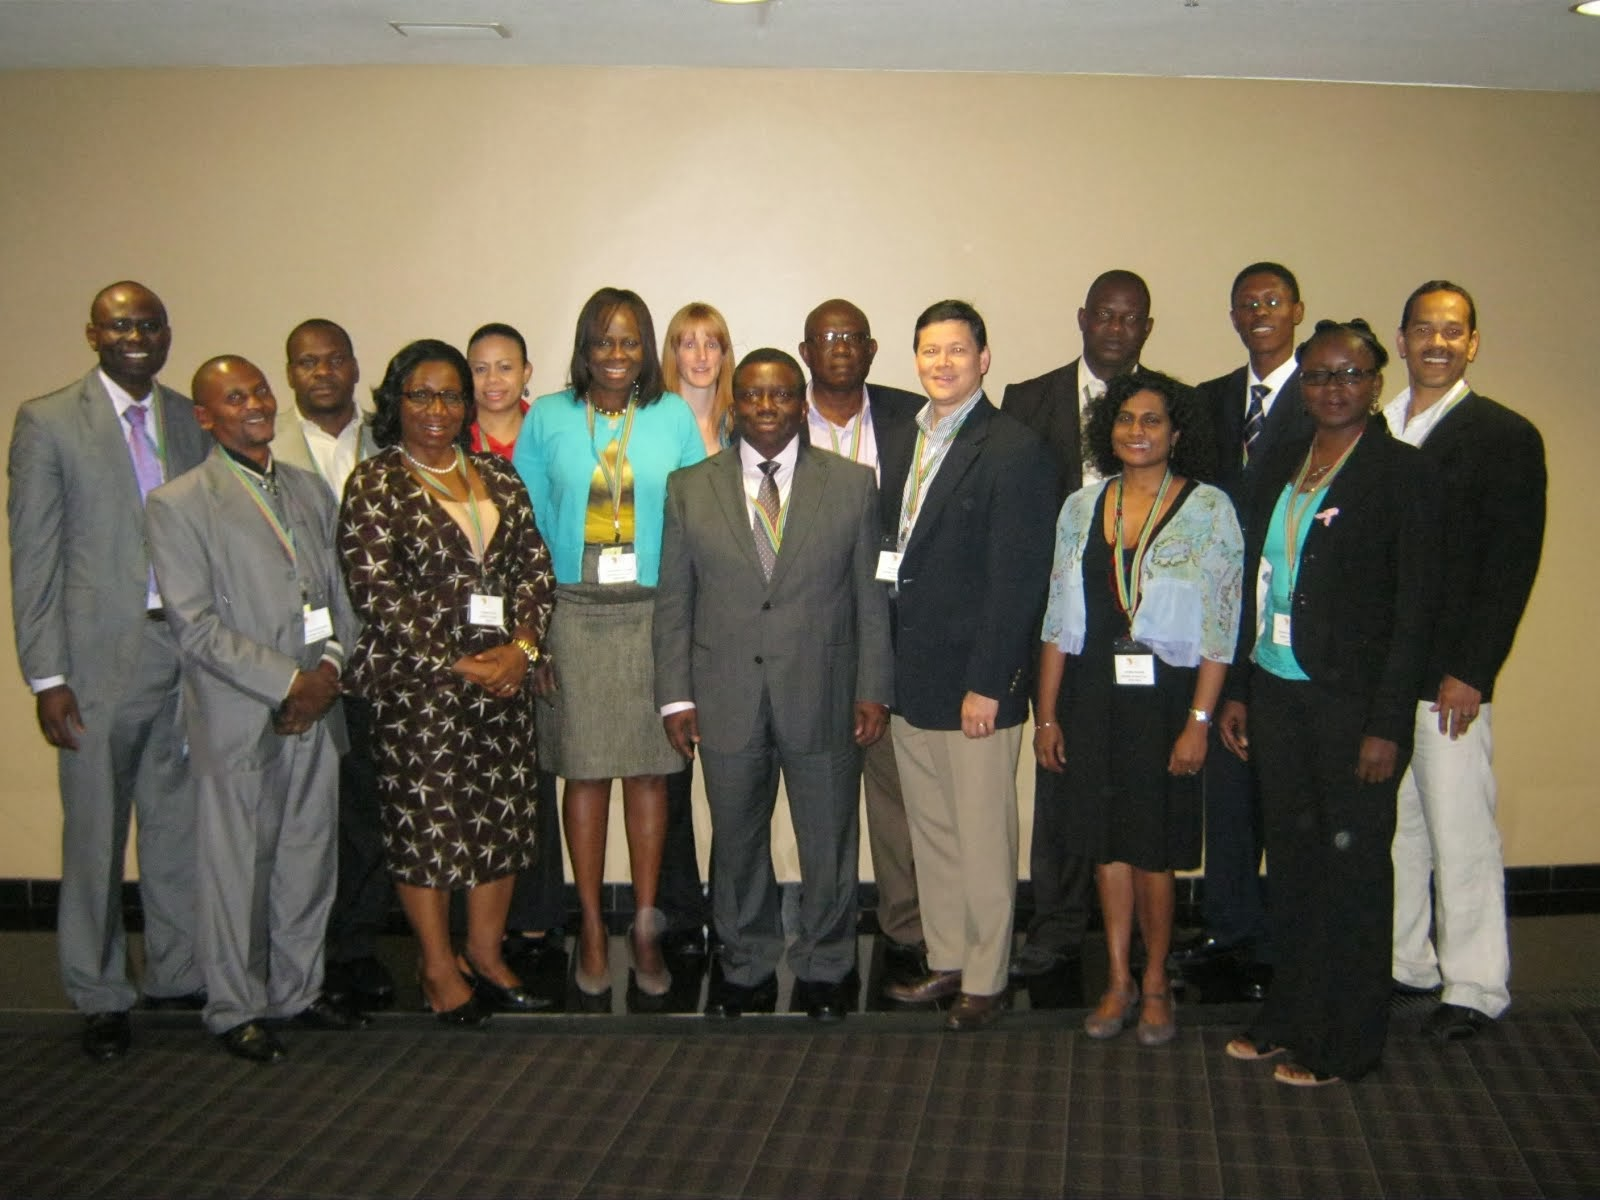 ACLI Leaders and Faculty in Durban/South Africa